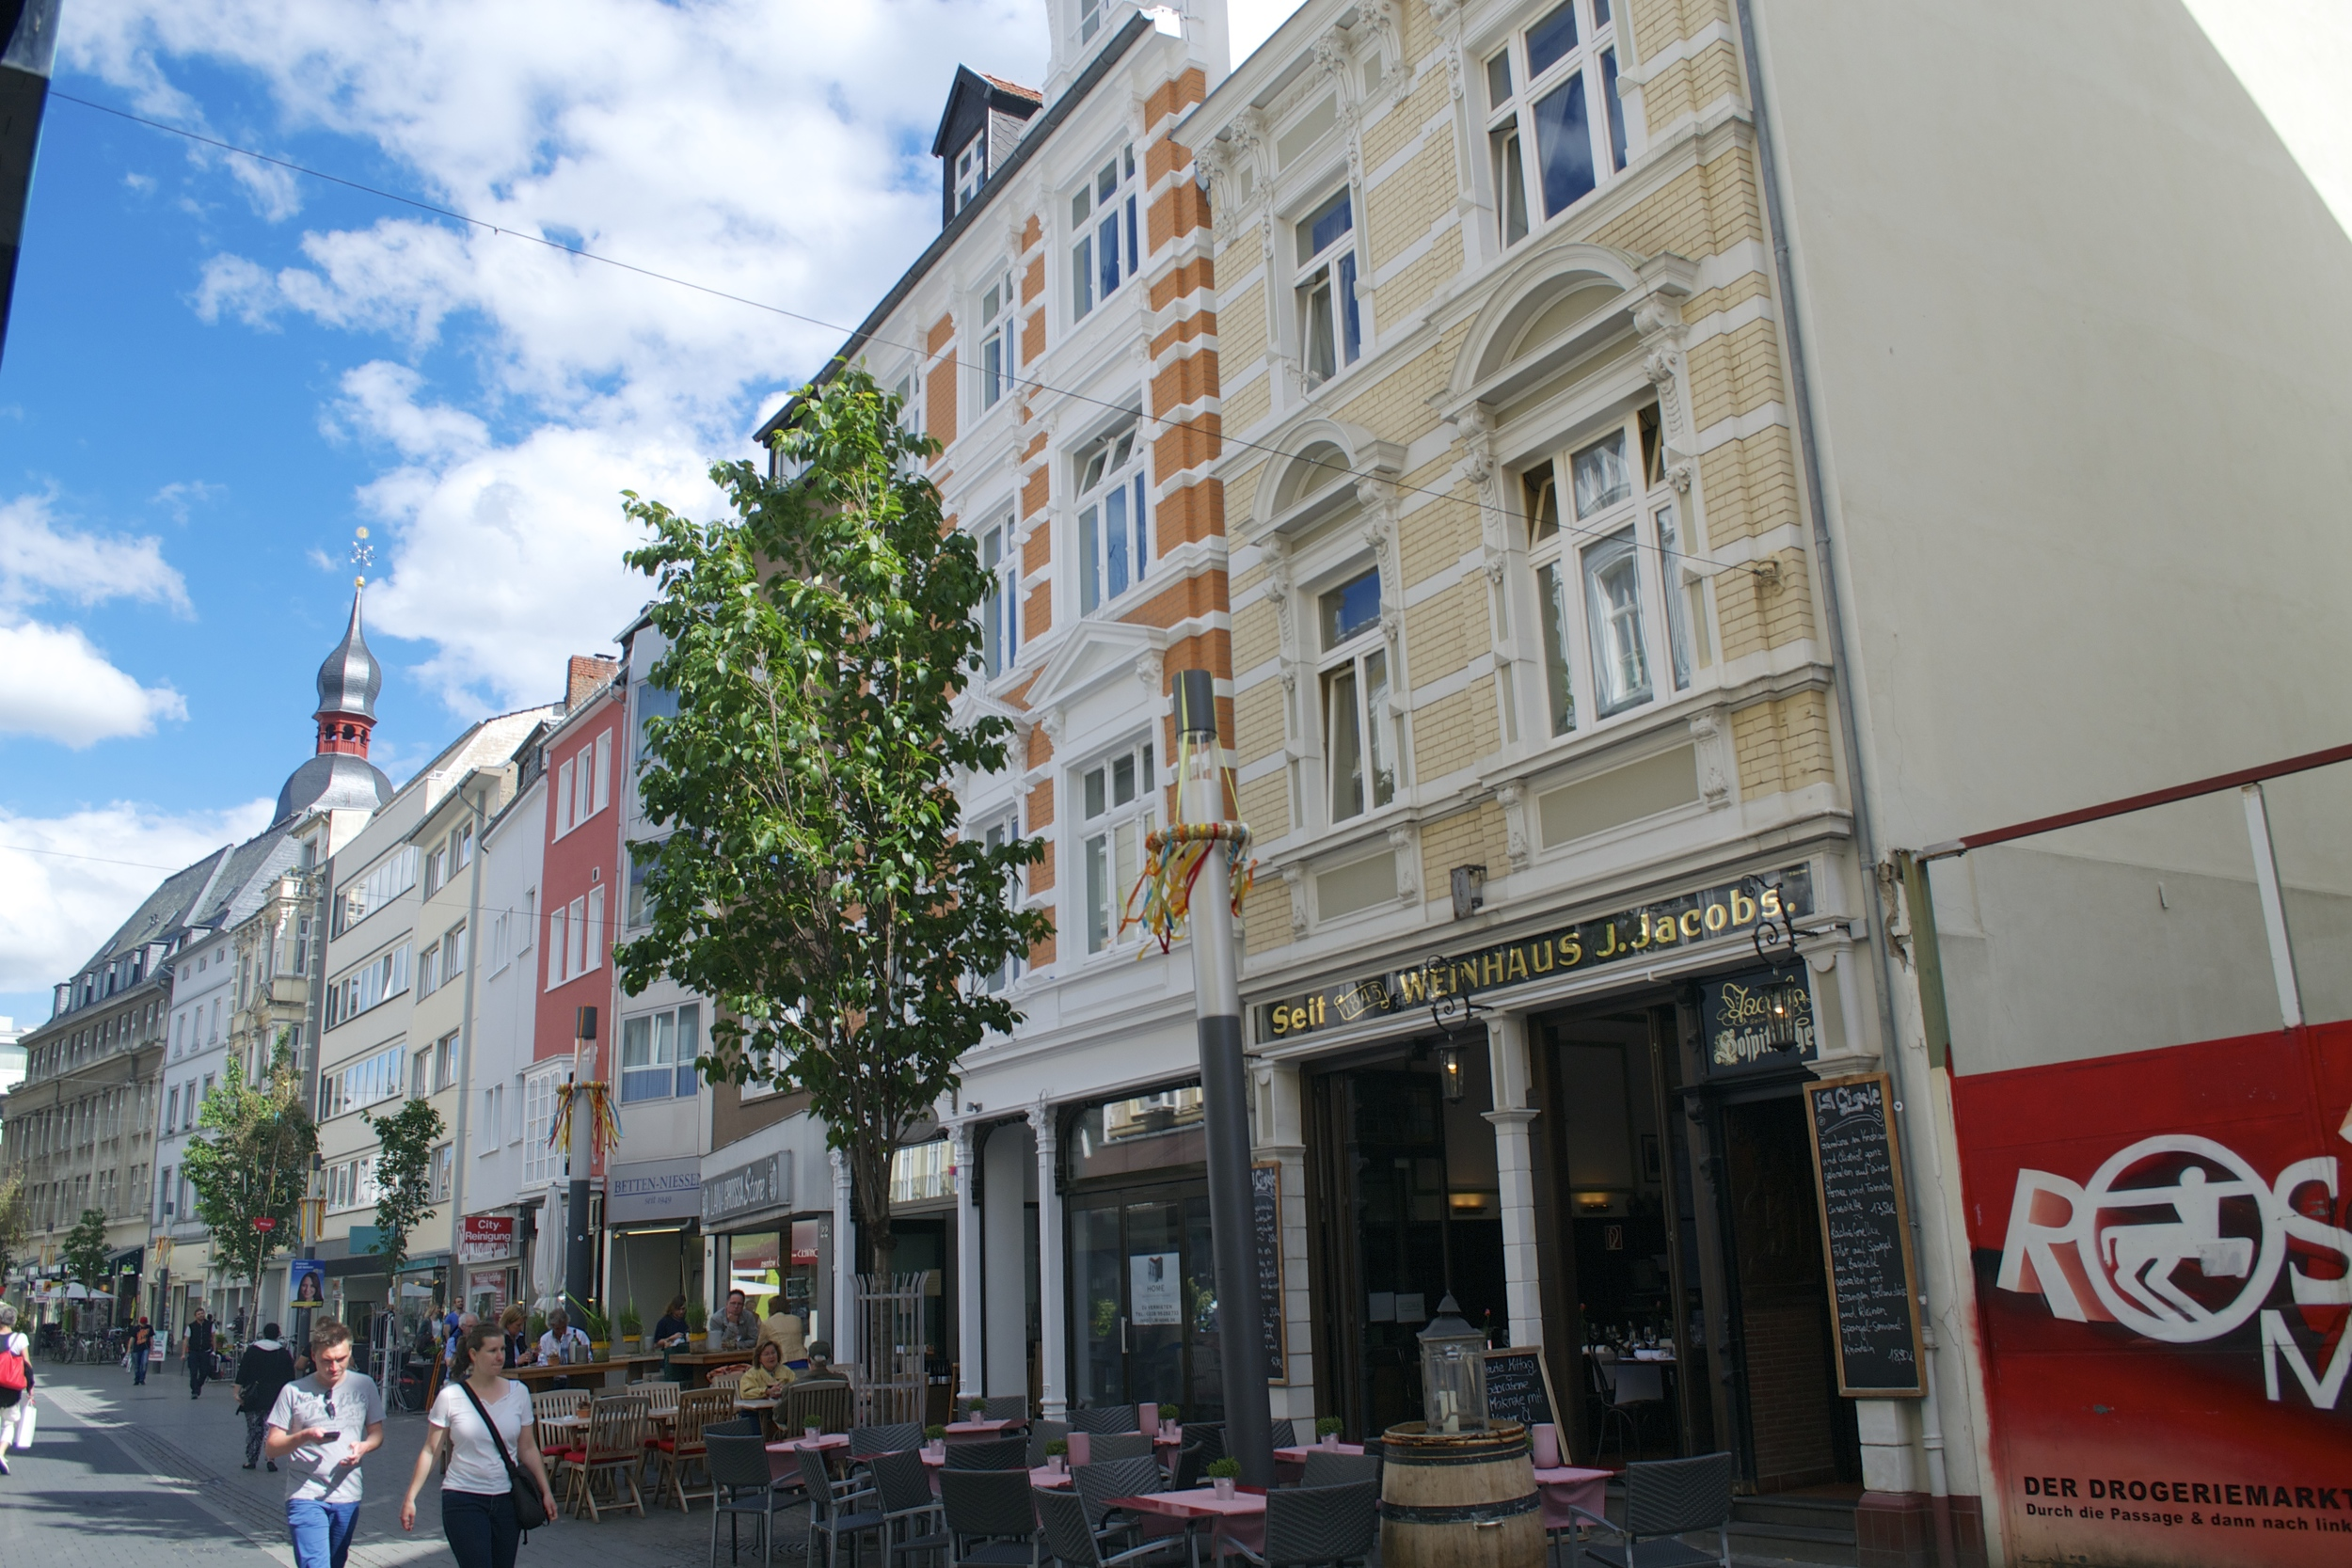 A typical street in Bonn's city center.